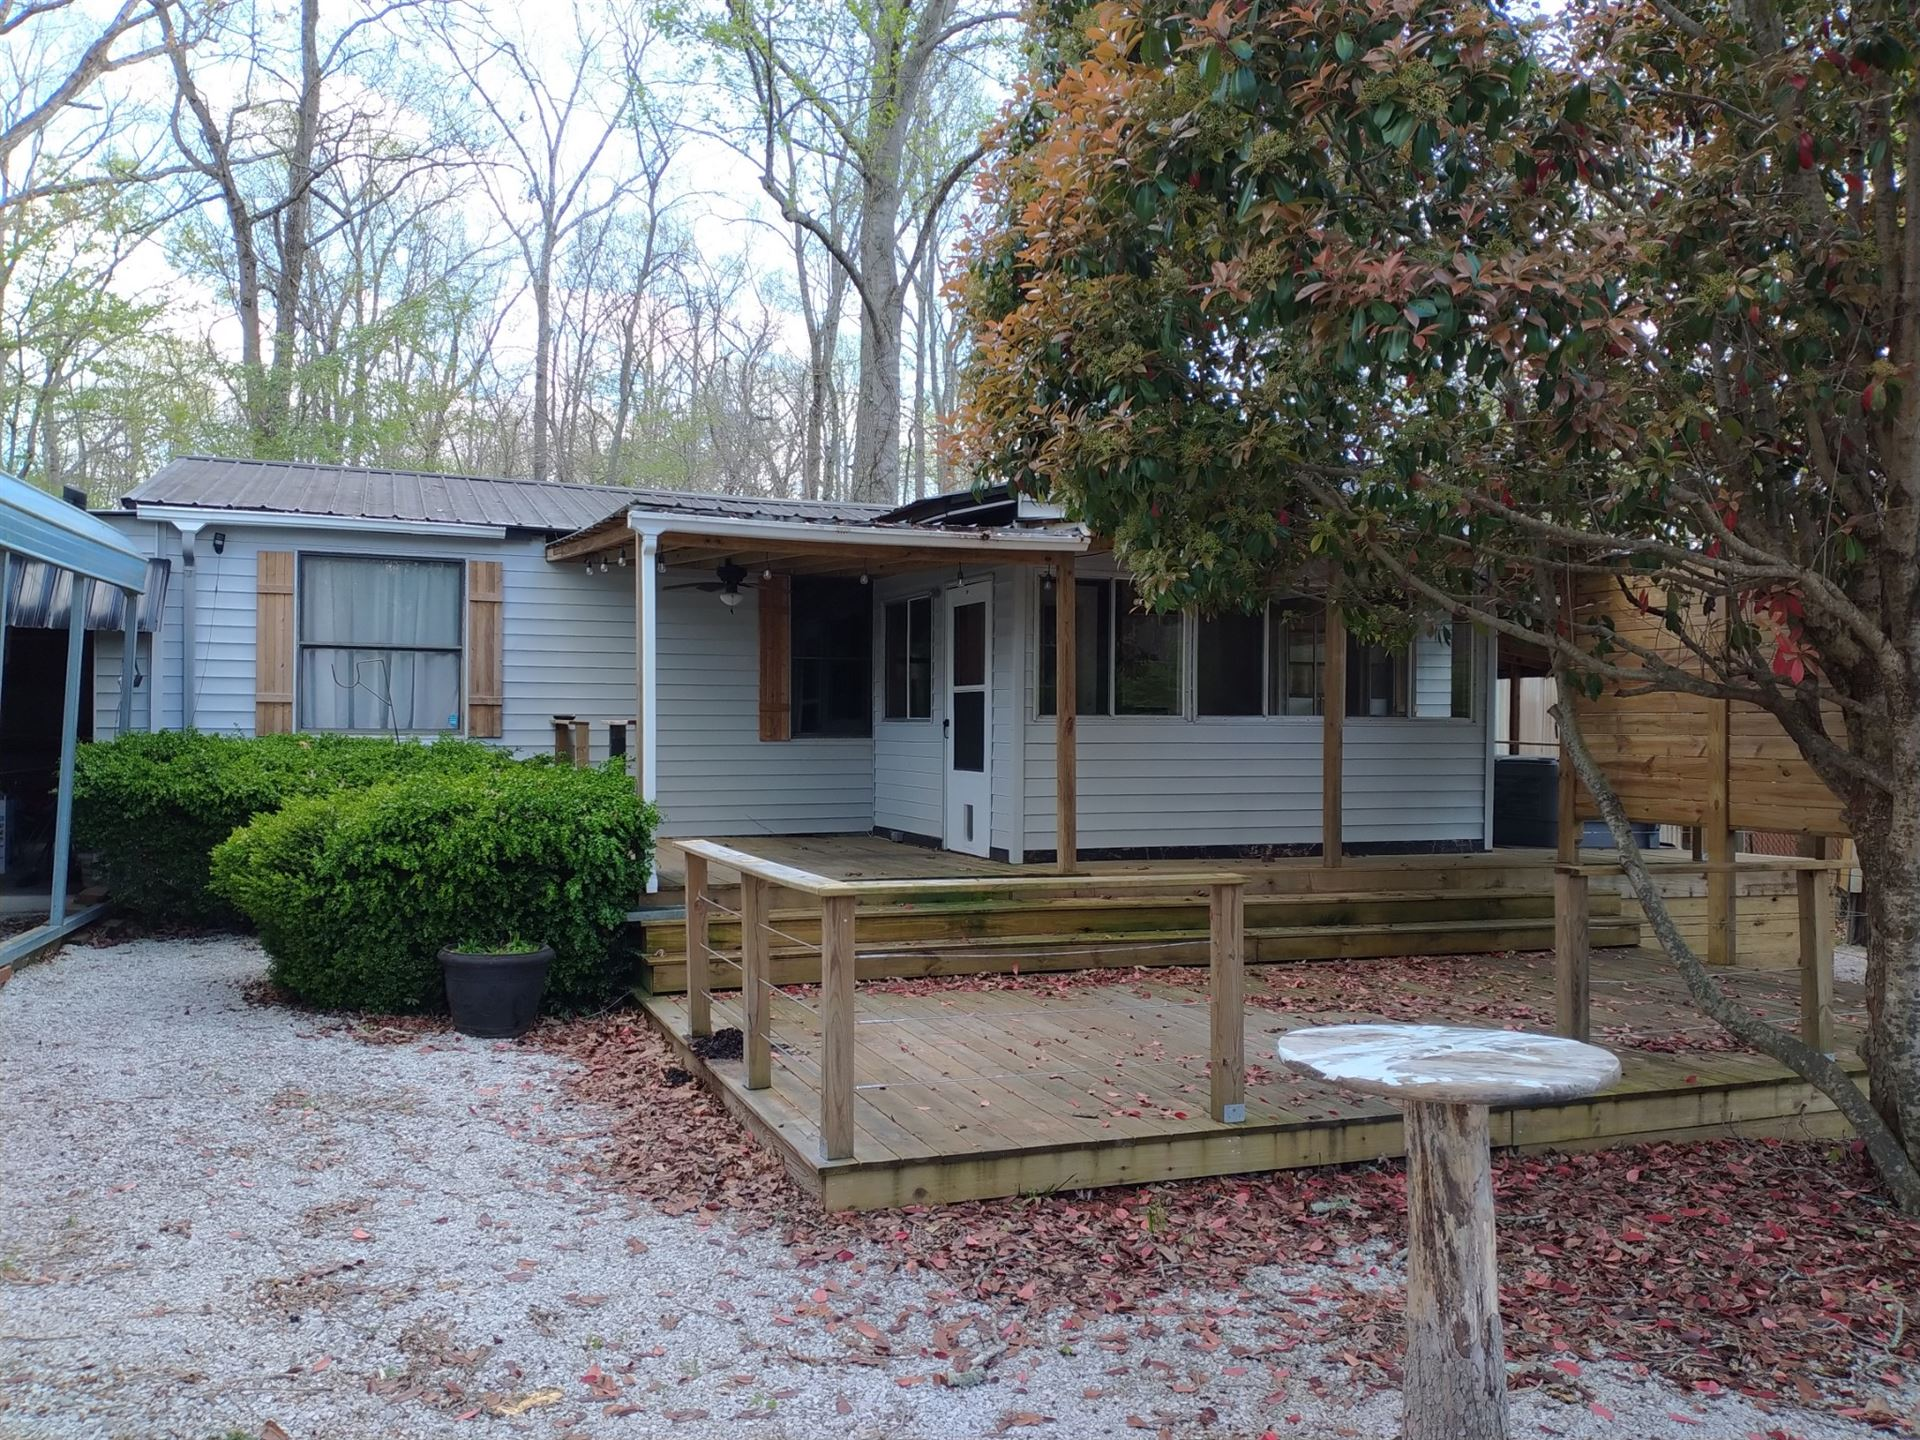 841 Lakewood Dr, Beechgrove, TN 37018 - MLS#: 2243502